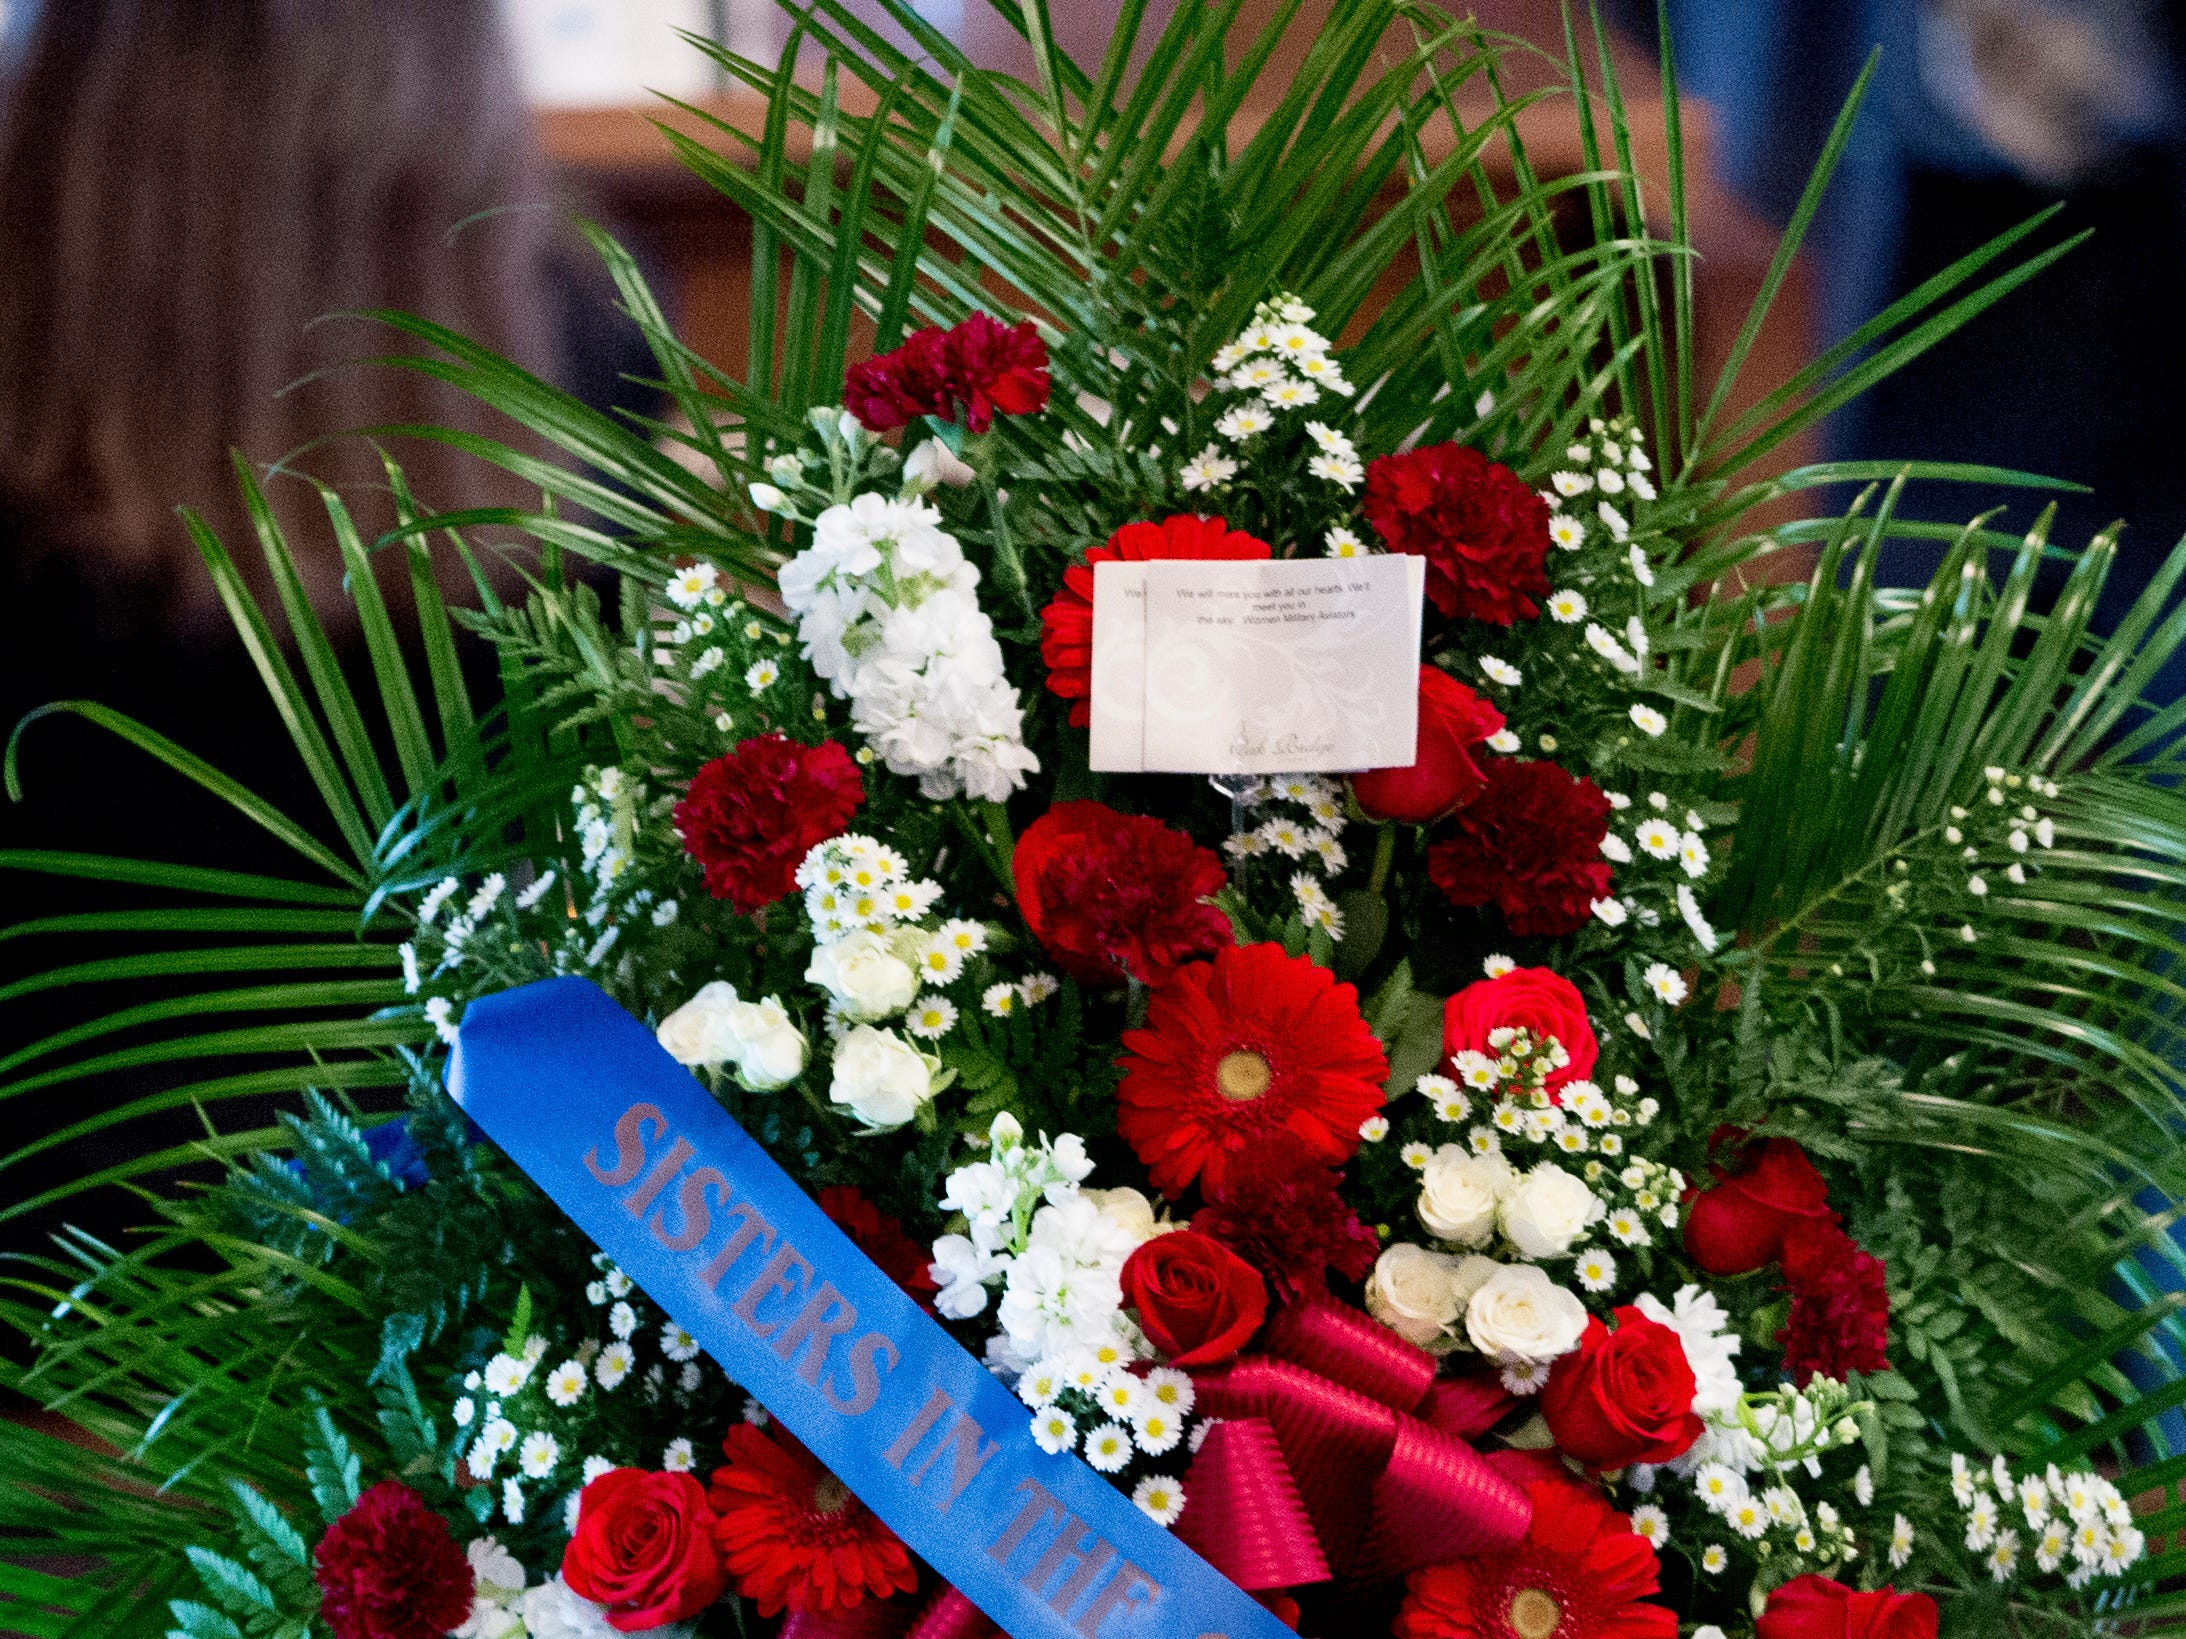 A wreath is displayed during a funeral service for Rosemary Mariner, the US Navy's first female fighter pilot, at Norris United Methodist Church in Norris, Tennessee on Saturday, February 2, 2019. Mariner died January 24th of cancer.